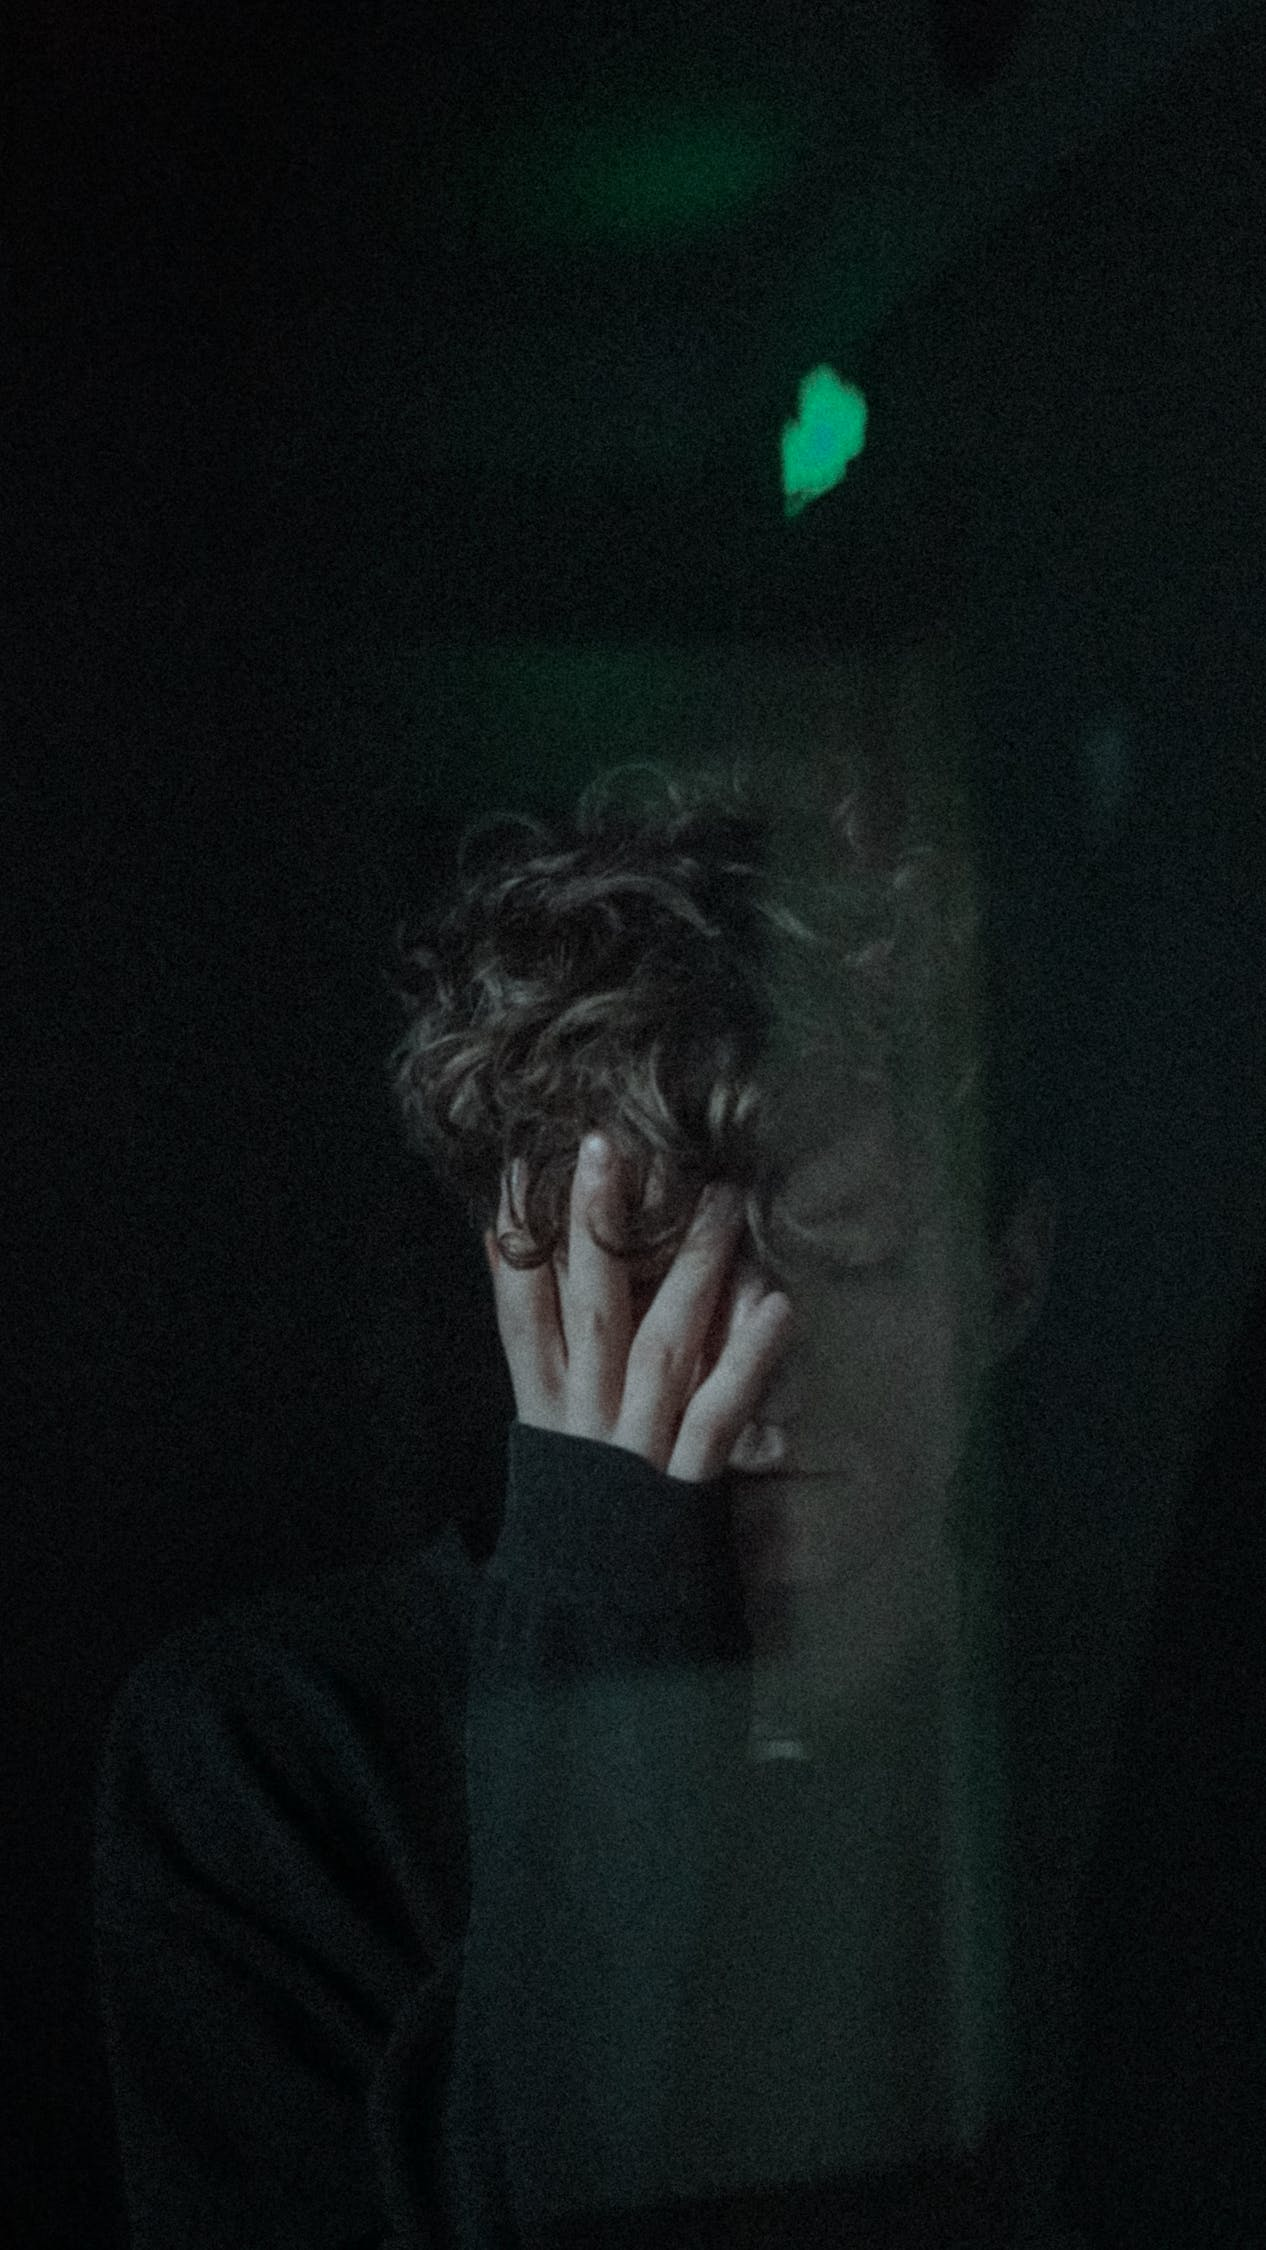 Through window of depressed unhappy male with closed eyes covering face with hand while standing in dark room near glass